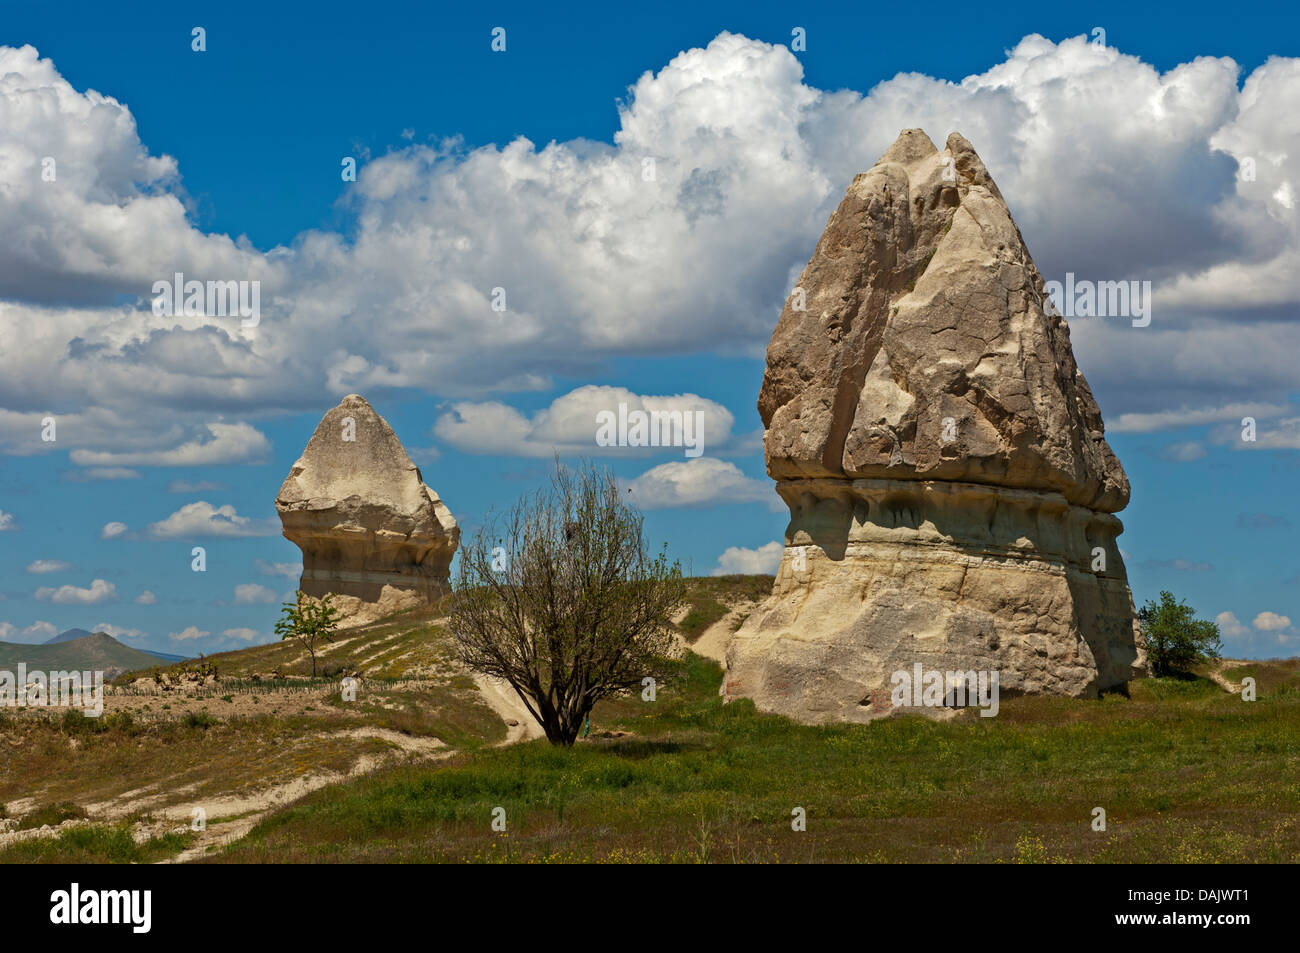 Tuff cones or fairy chimneys - Stock Image